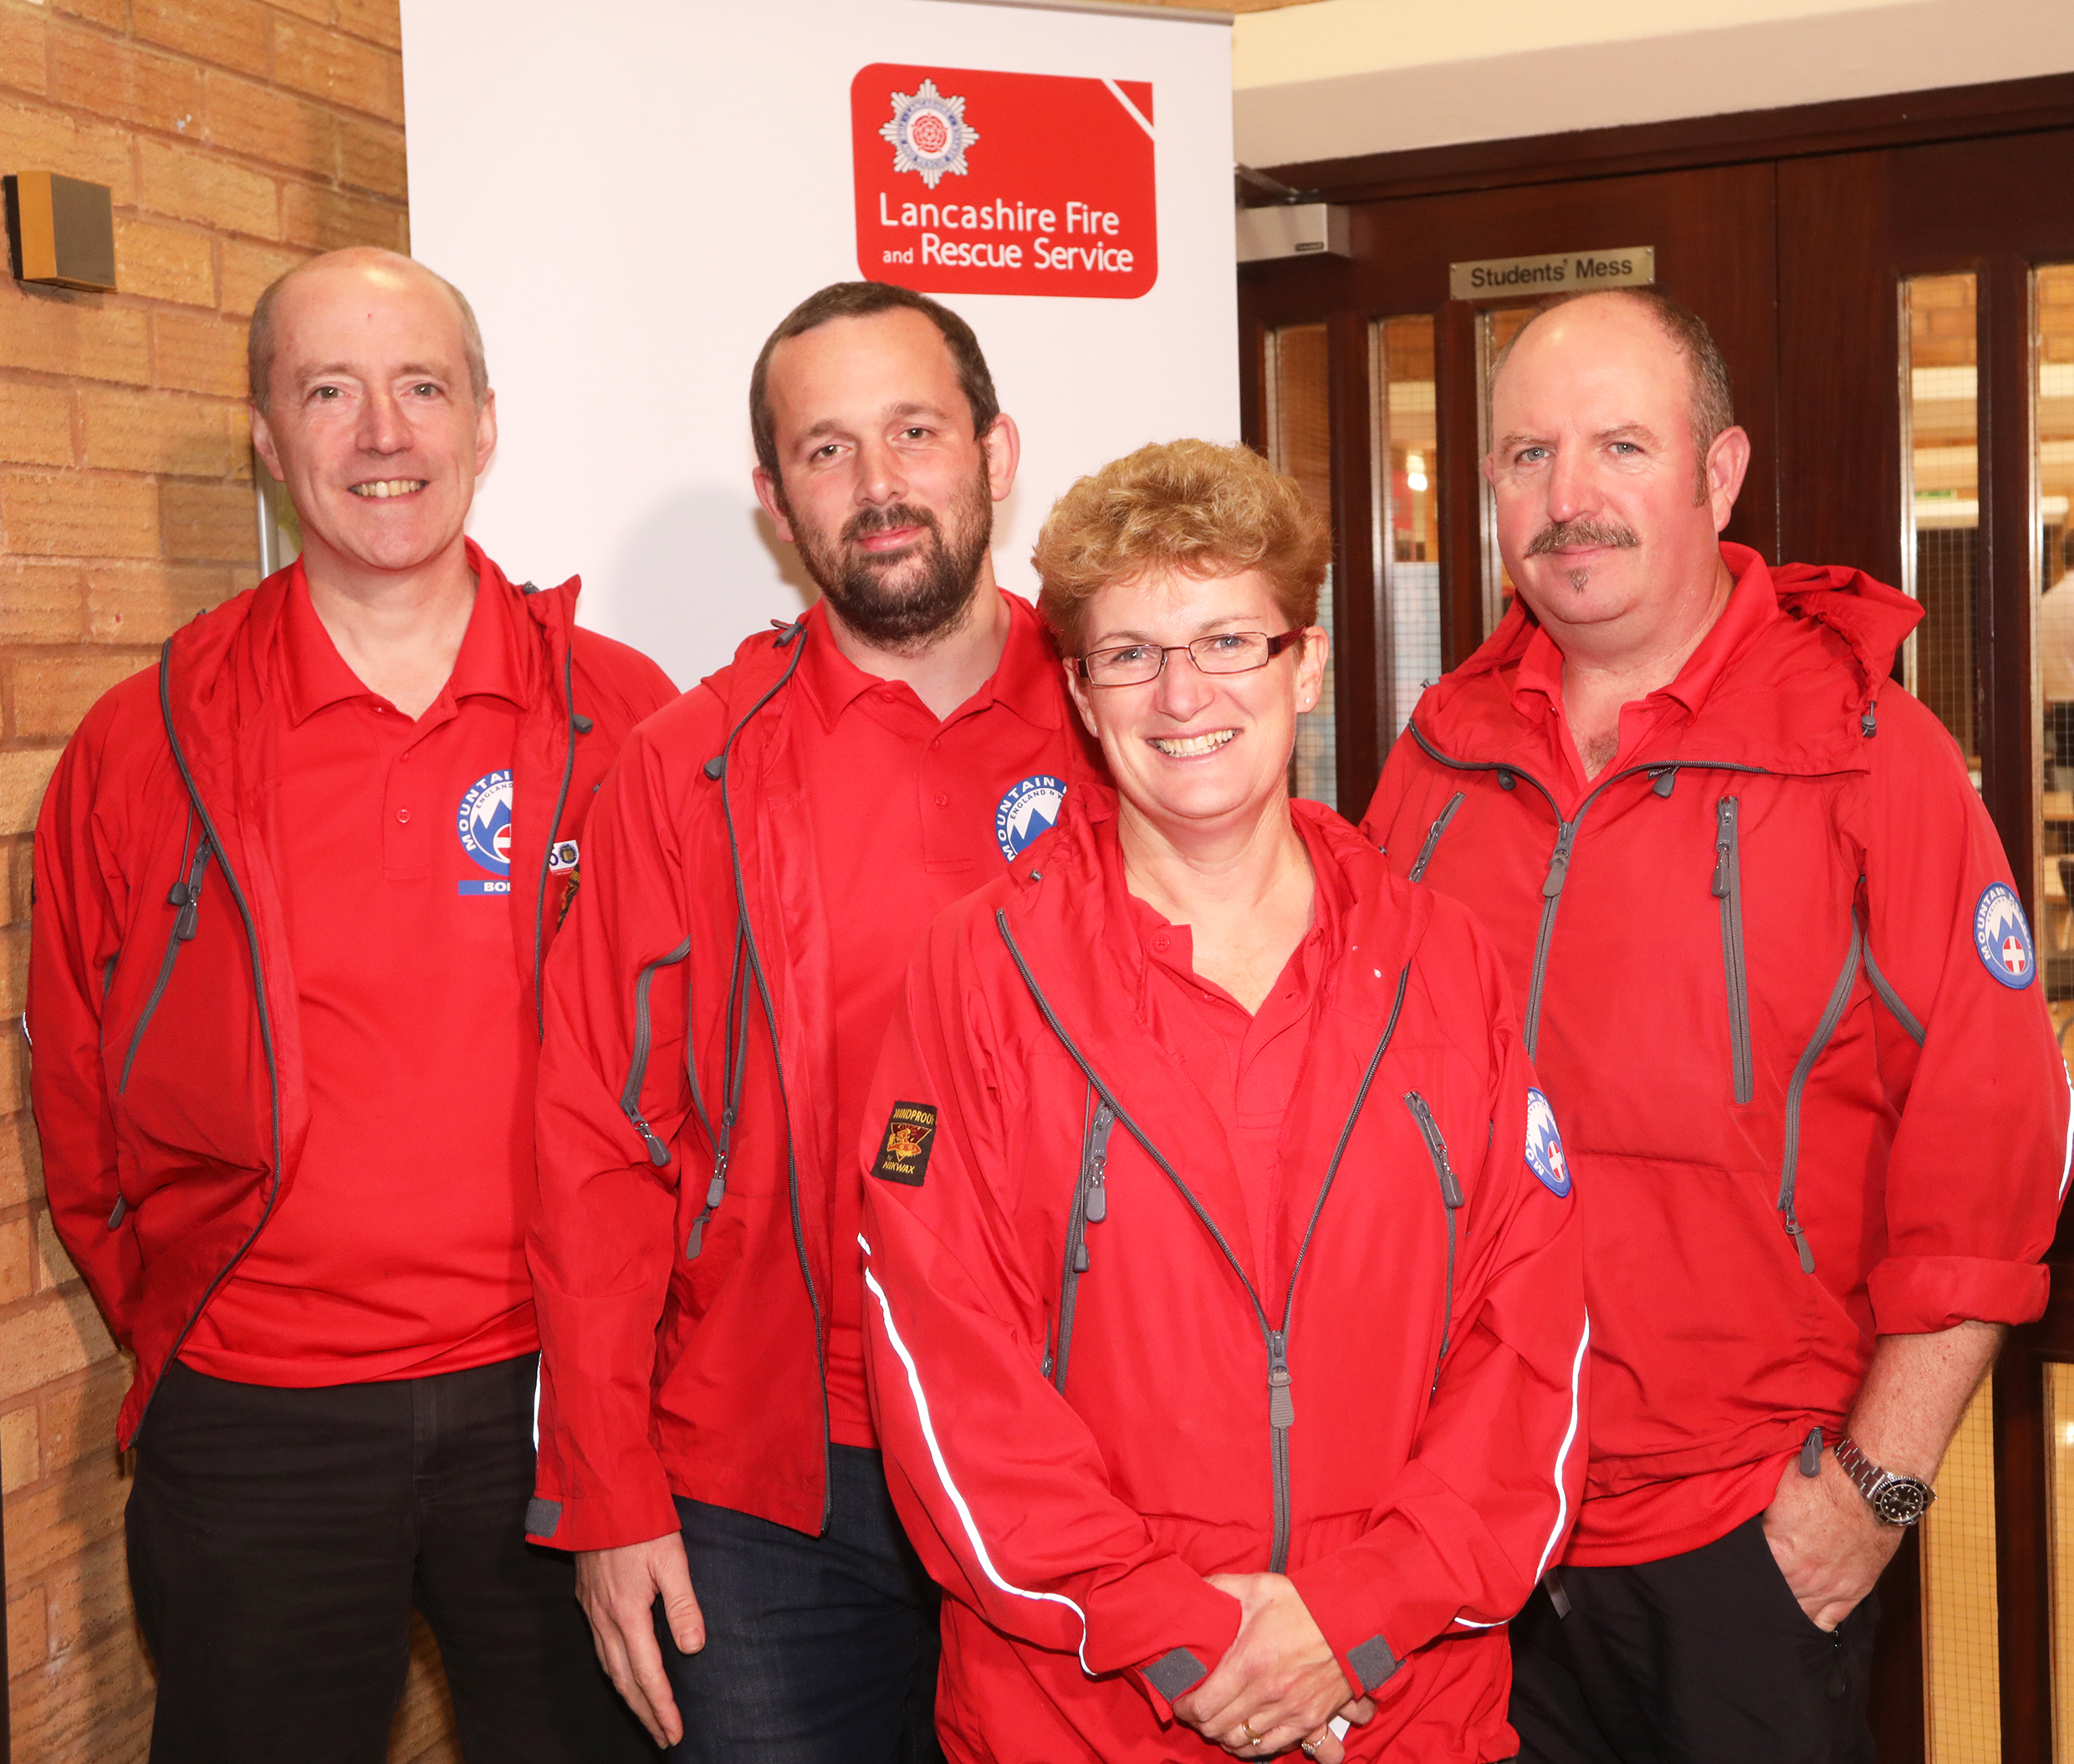 The Bolton Mountain Rescue team